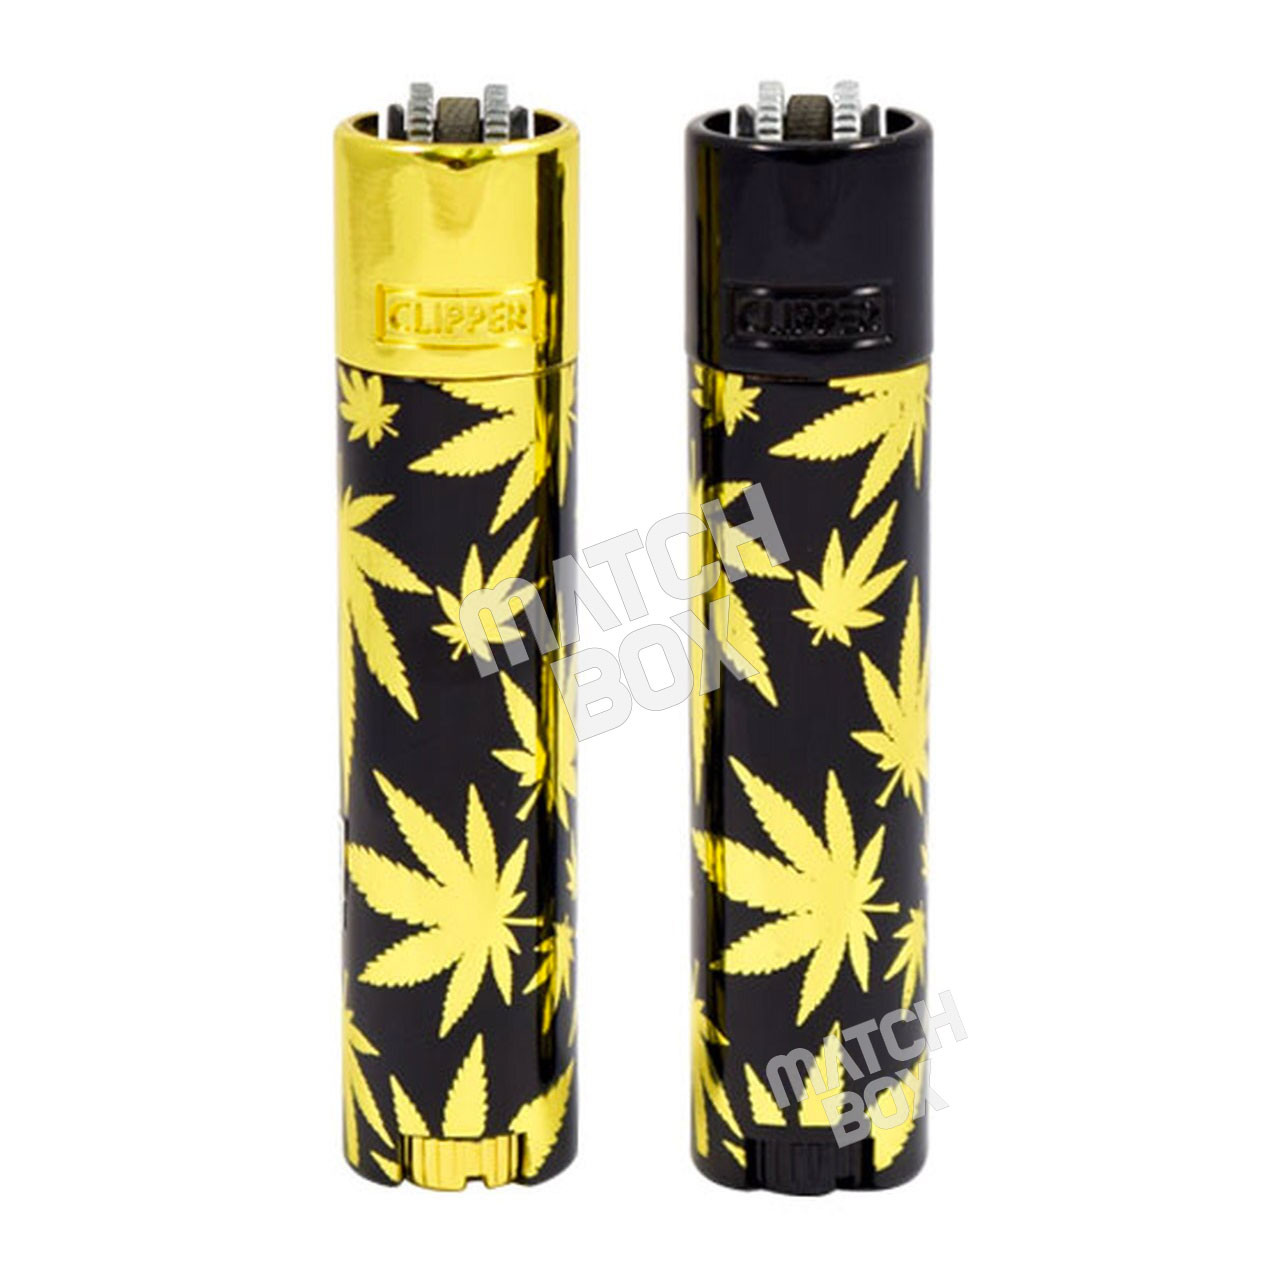 Clipper Metal Gold Leaves Lighter